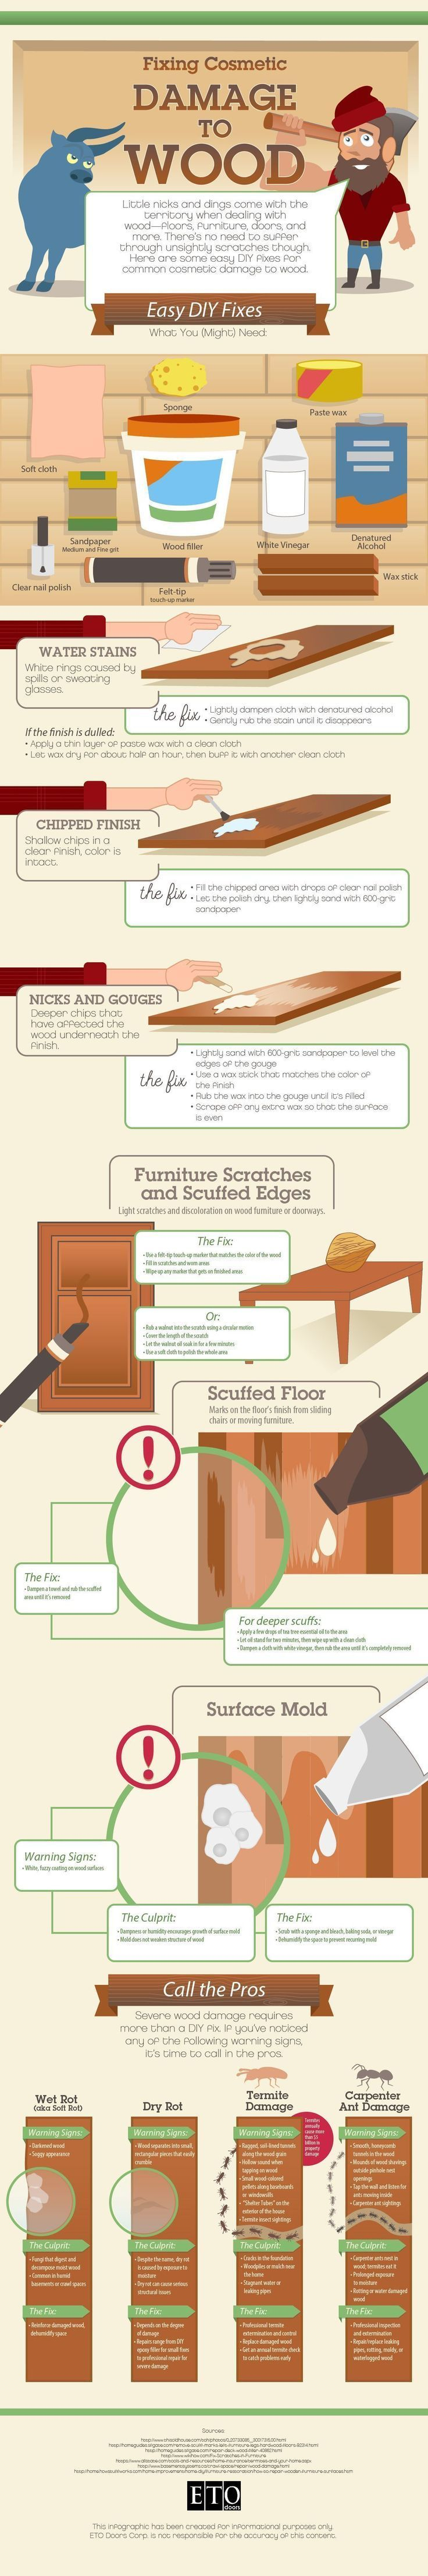 medium resolution of fixing cosmetic damage to wood infographic woodworkinginfographic diy ideas in 2018 pinterest houtbewerking hout and houtwerk